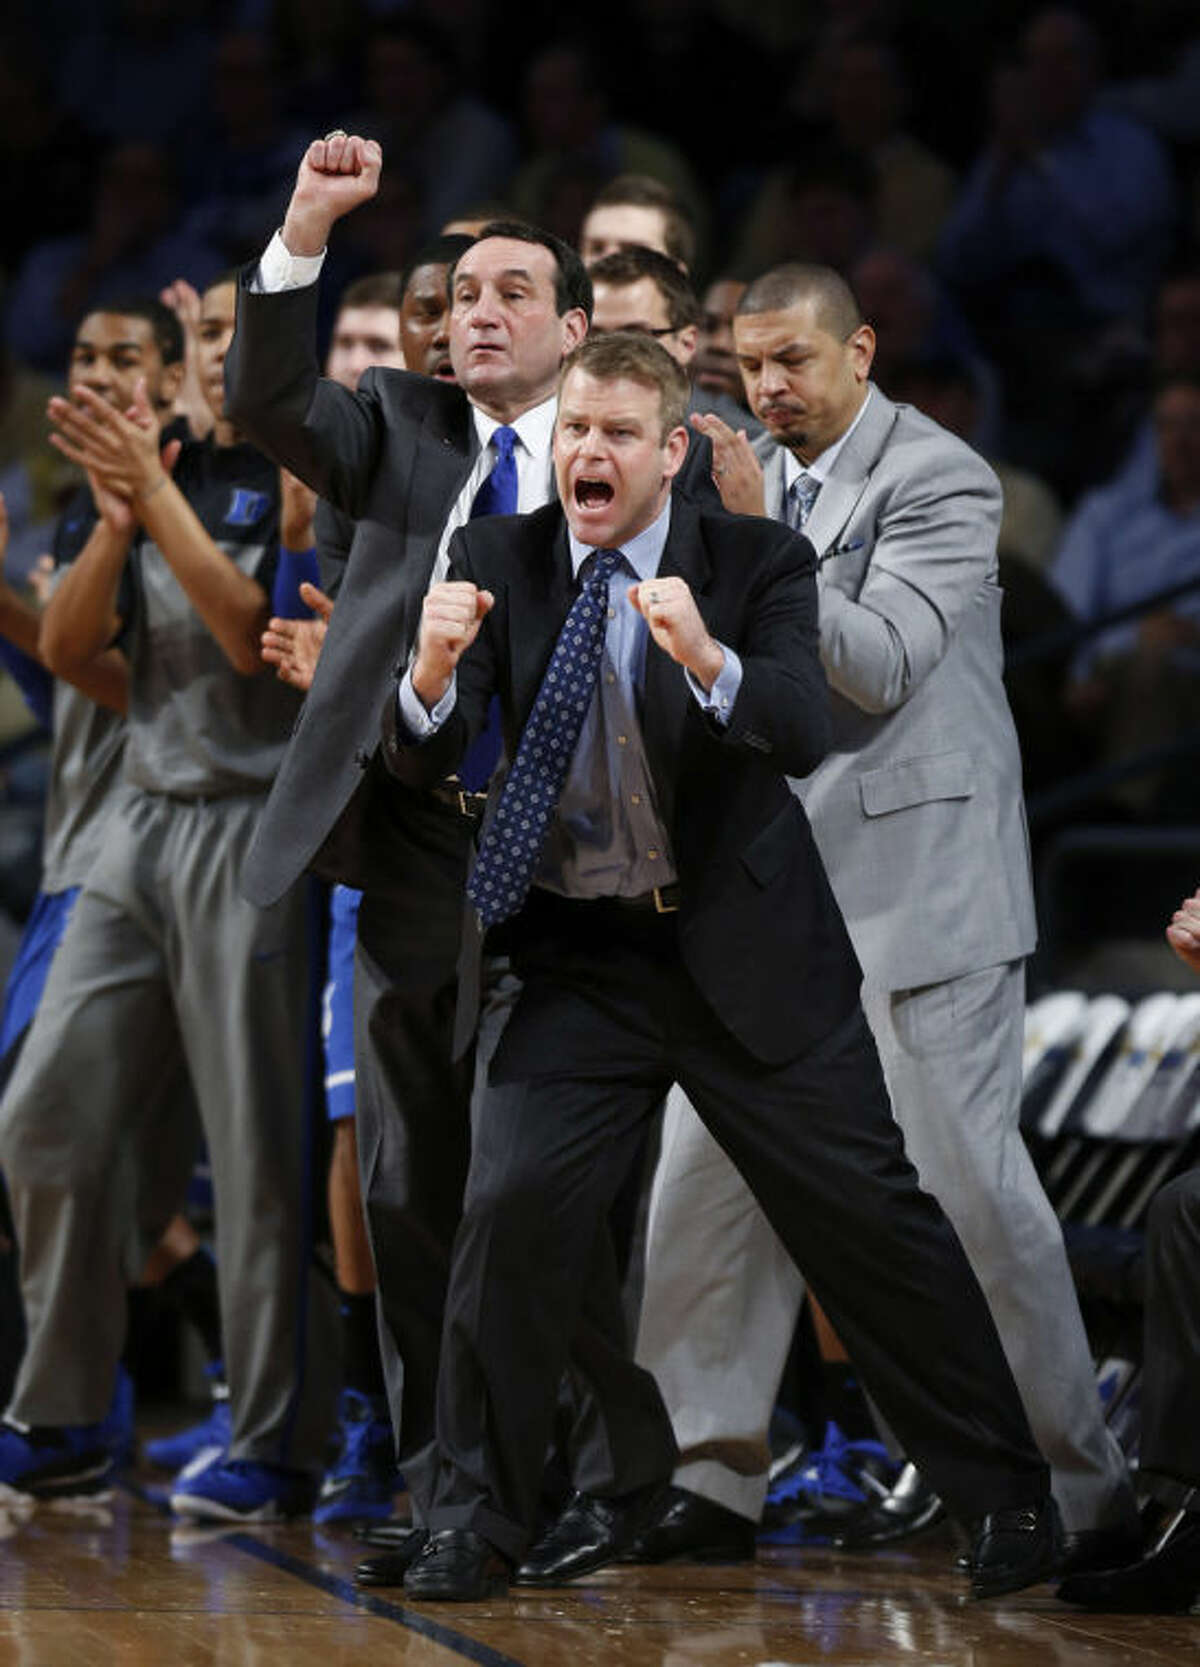 FILE - In this Feb. 18, 2014, file photo, Duke assistant coach Steve Wojciechowski, foreground, head coach Mike Krzyzewski, second from left, react during the first half of a basketball game against Georgia Tech in Atlanta. A person familiar with the situation says Marquette has hired Duke assistant Wojciechowski as its next men's basketball coach. The person spoke to The Associated Press Tuesday, April 1, on condition of anonymity because Marquette has not announced Wojciechowski's hiring. (AP Photo/John Bazemore, File)